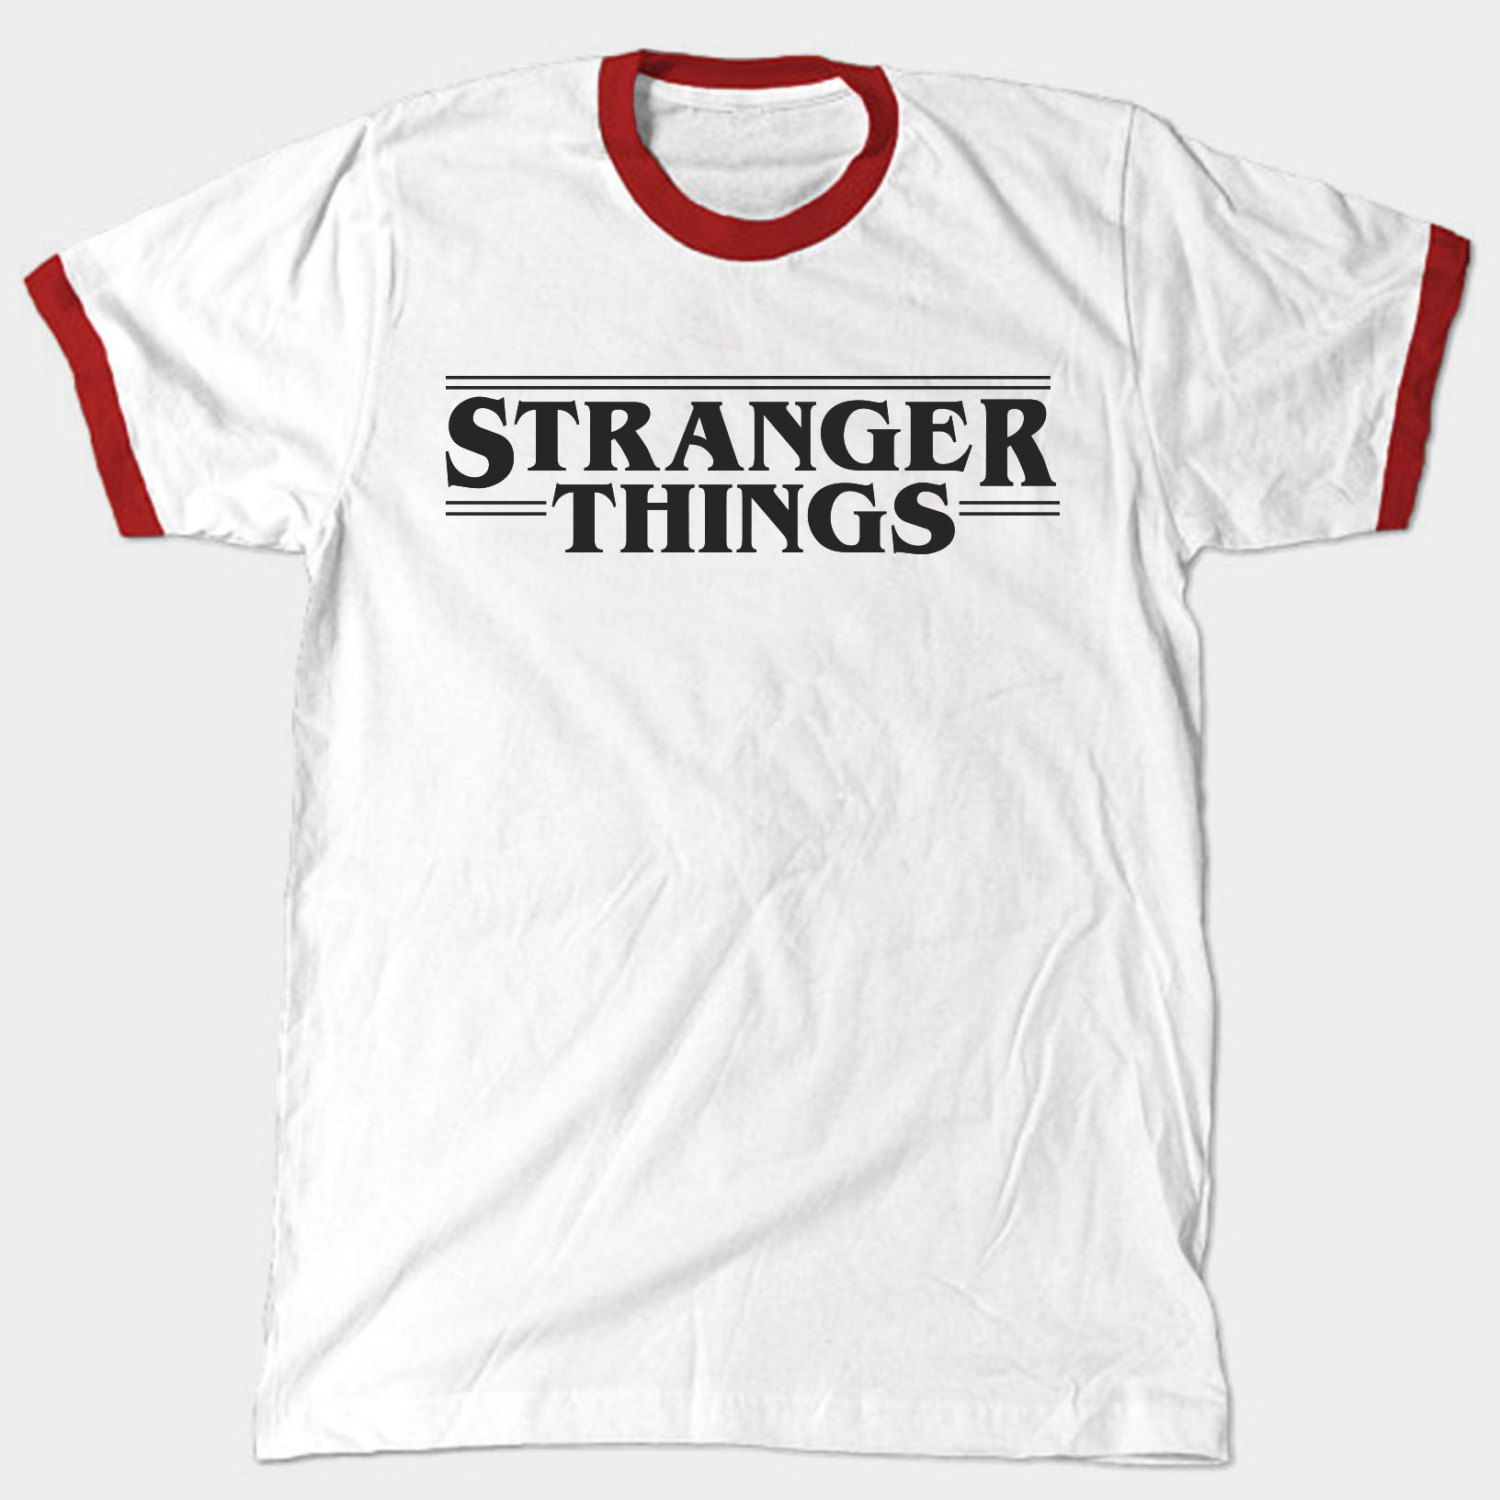 stranger things ringer by fanthreads on etsy style. Black Bedroom Furniture Sets. Home Design Ideas